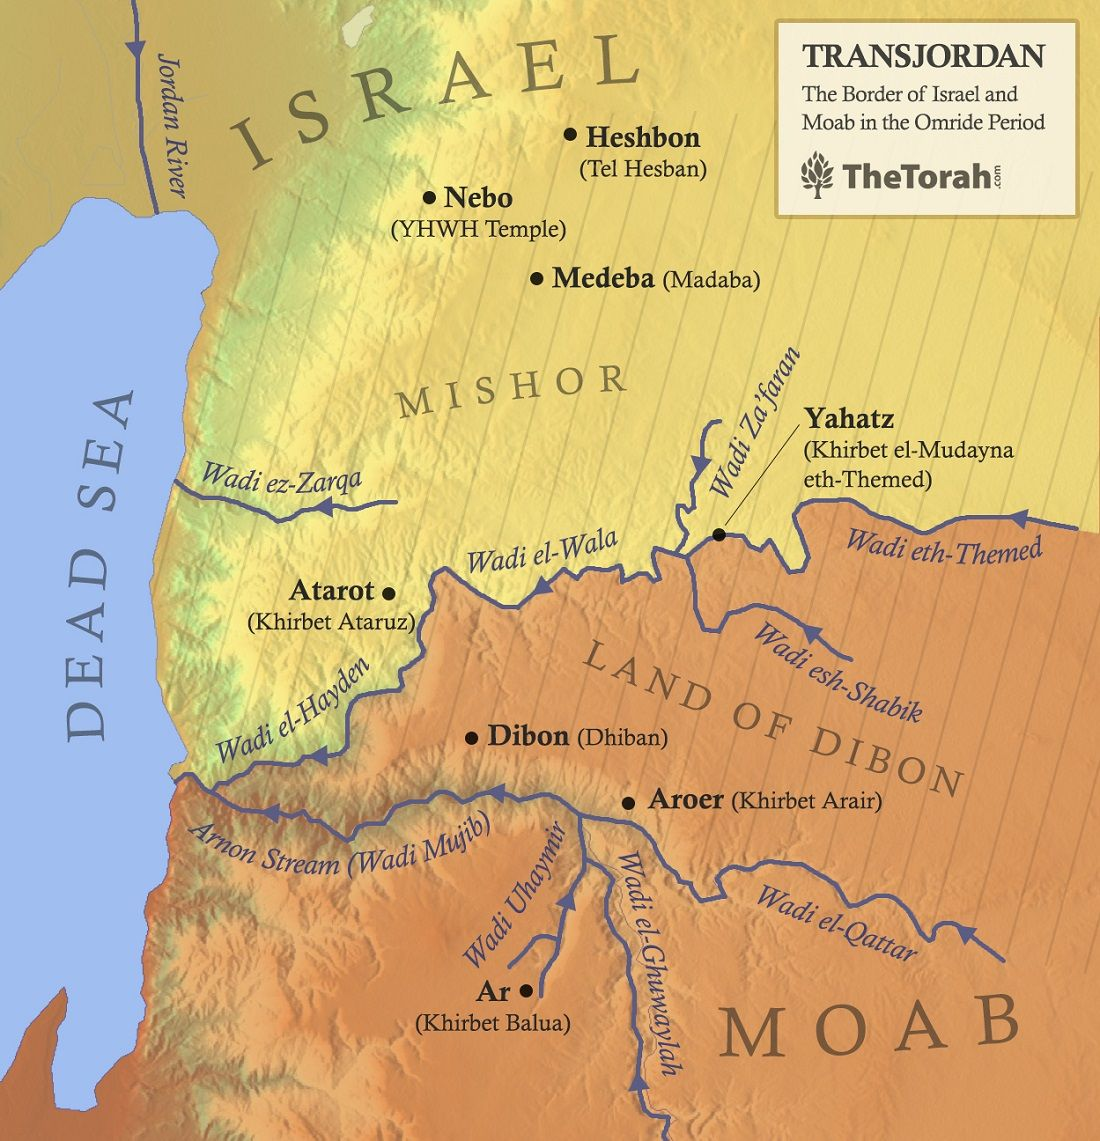 North Israelite Memories of the Transjordan and the Mesha Inscription